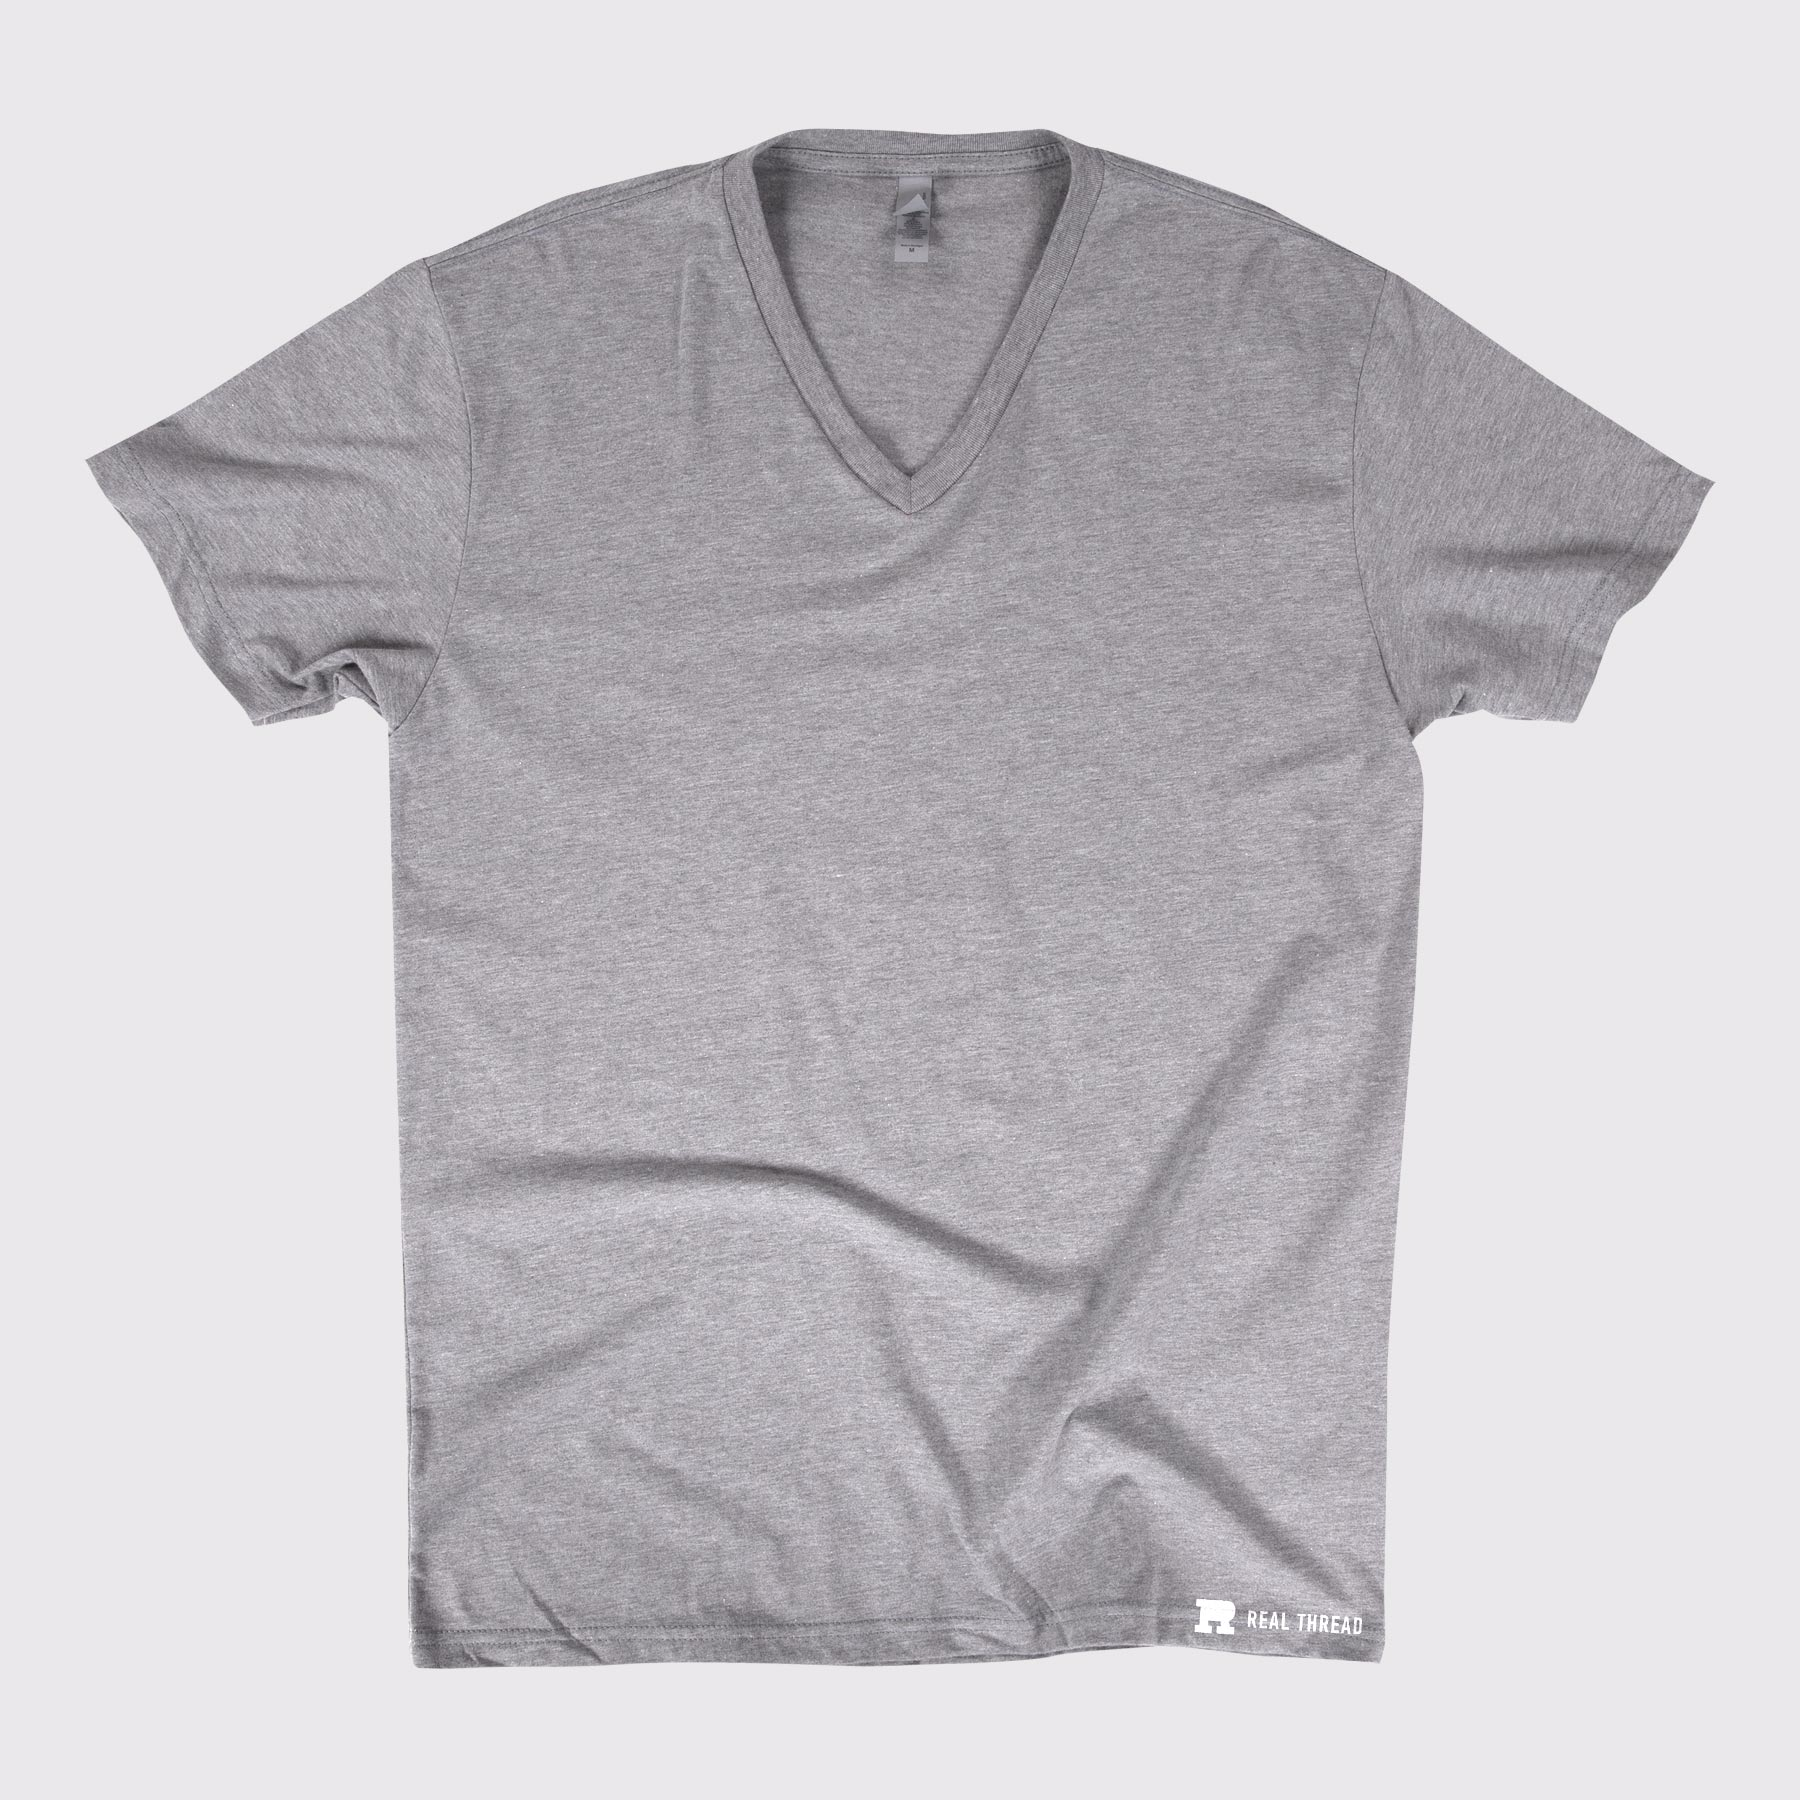 Next Level Apparel 6240 V-Neck Flat